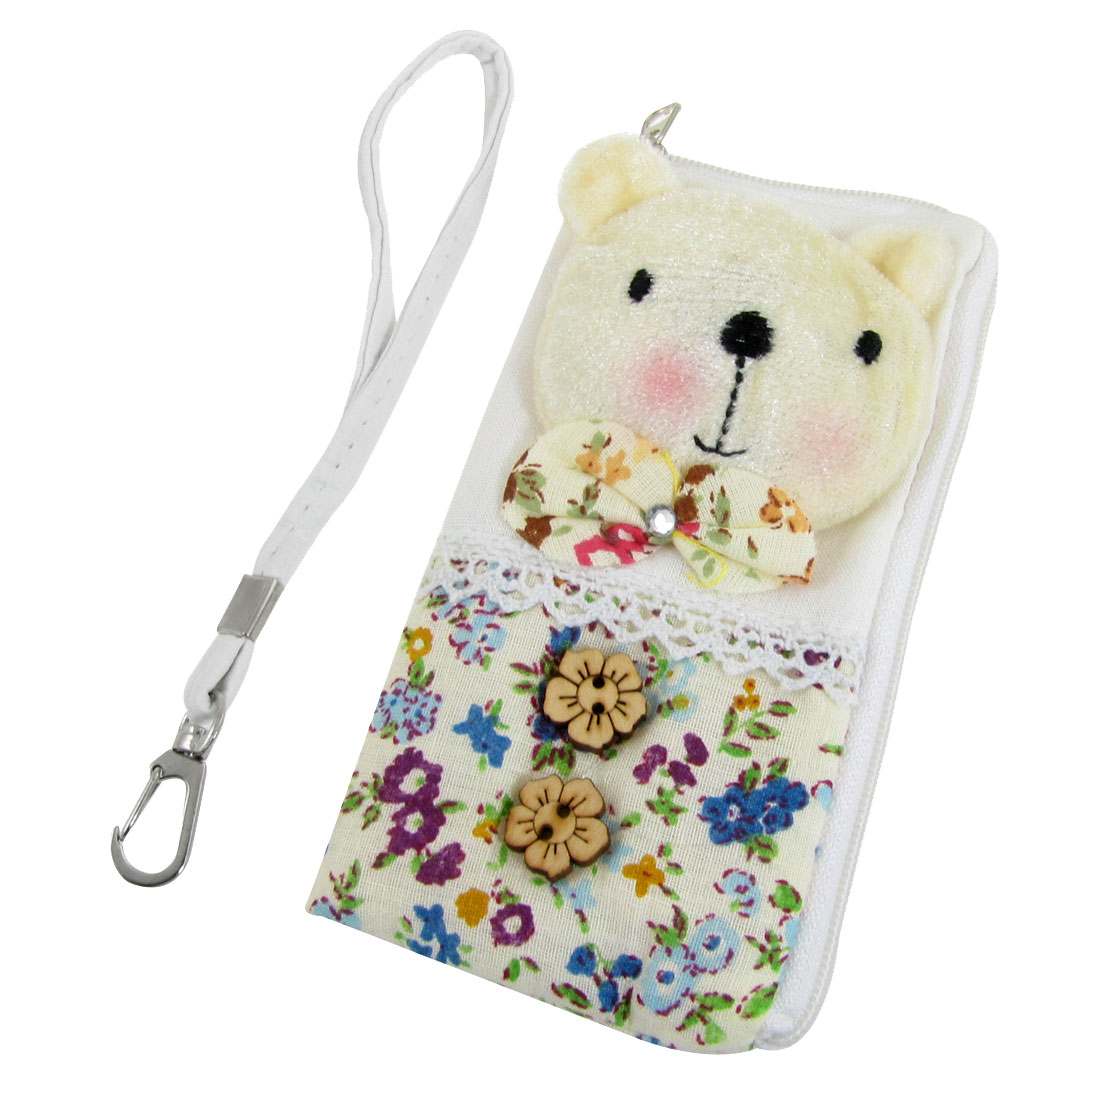 Colorful Flower Pattern L Shape Zip Up Pouch Bag for iPhone 4 4G 4S